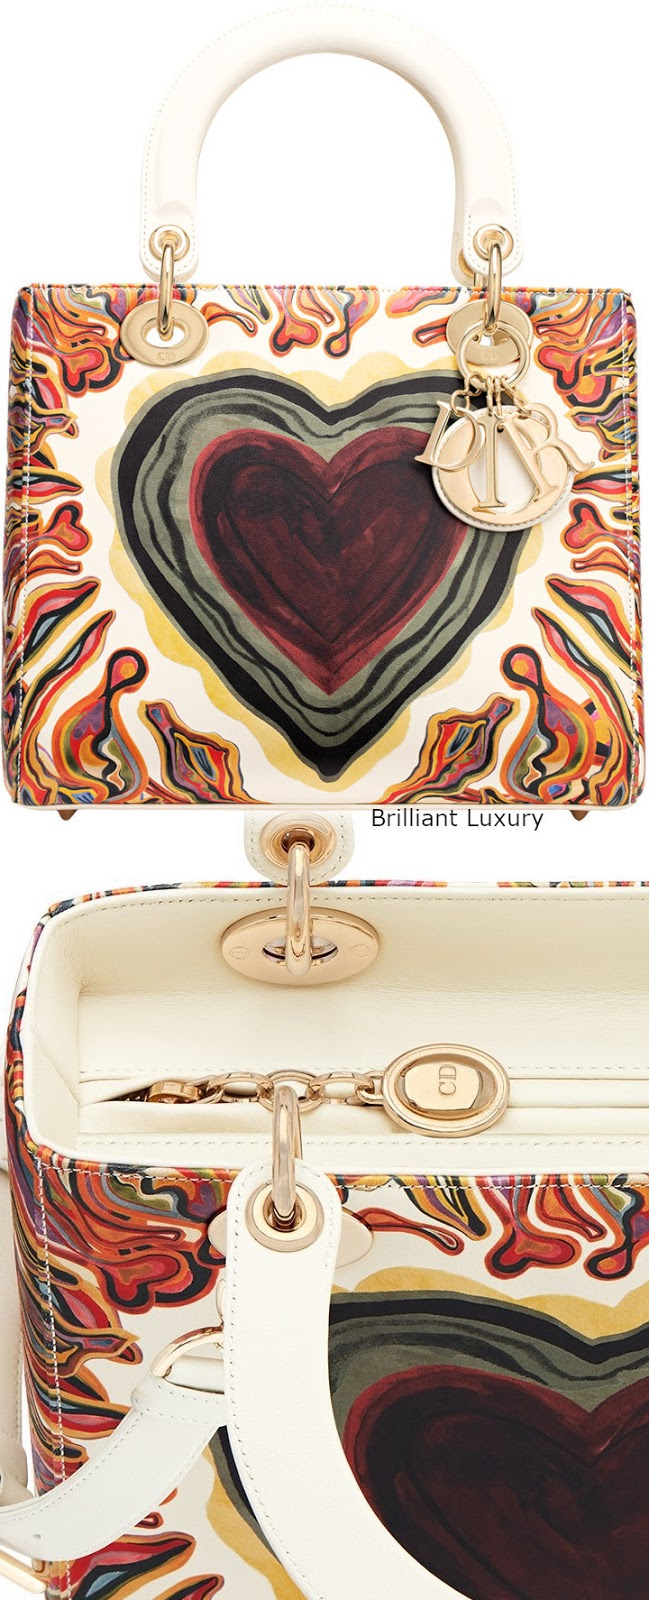 Brilliant Luxury♦Lady Dior bag, off-white calfskin printed with a textured Dioramour heart, light gold-tone metal jewellery